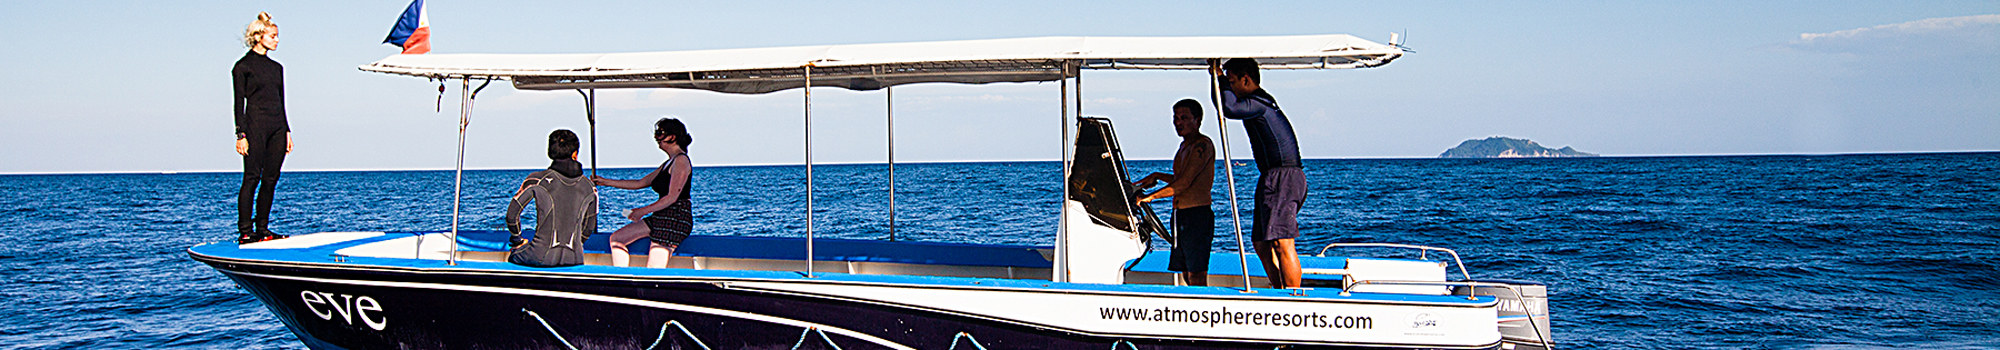 Atmosphere's fast speed boat Eve will quickly take you to all the Dauin dive sites whereas the big banka Victoria is mostly used for day trips or longer trips to nearby islands in the Philippines.